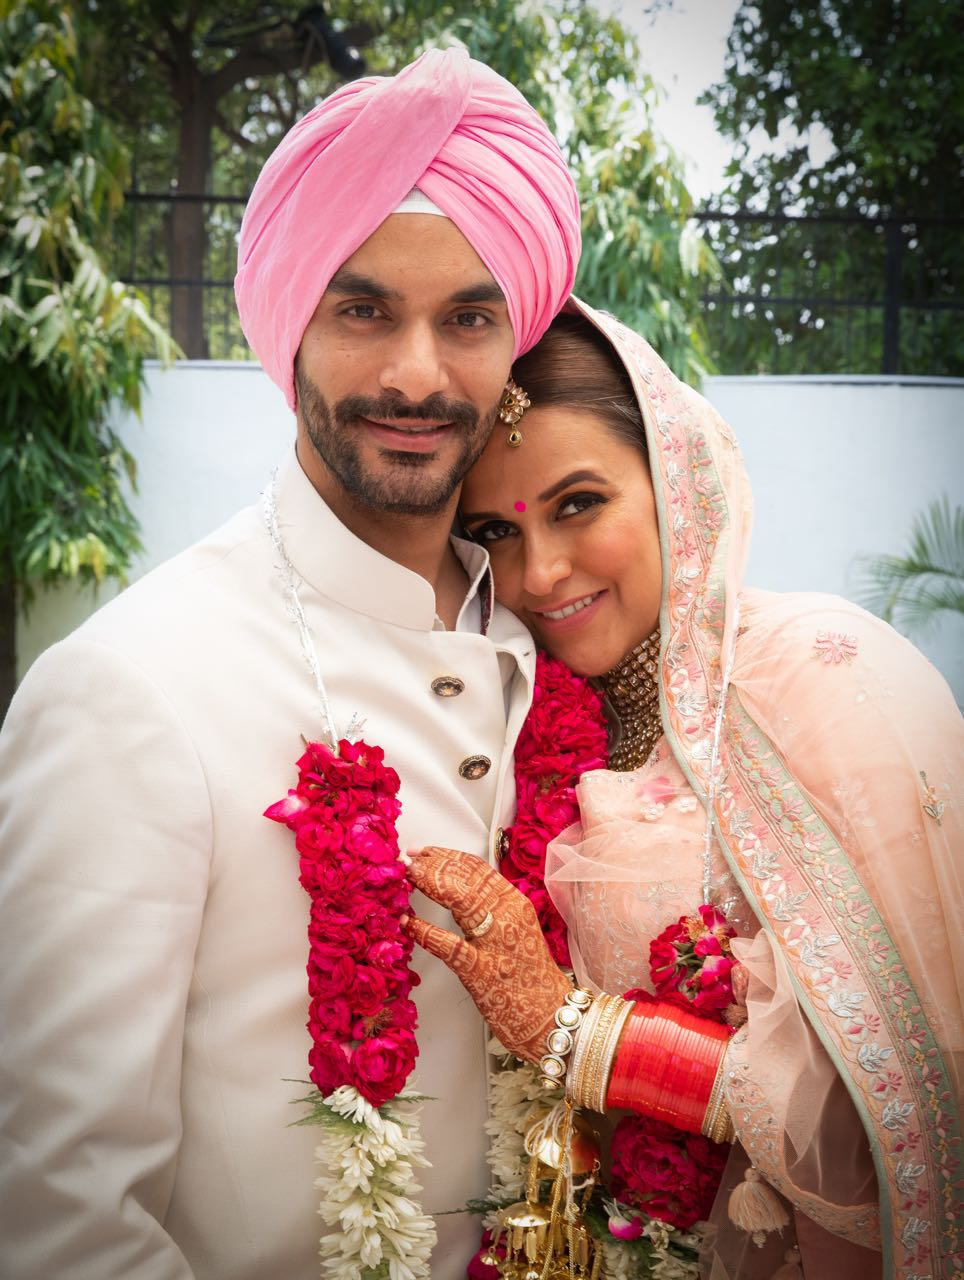 Neha-Dhupia-and-Angad-Bedis-wedding-picture.jpg